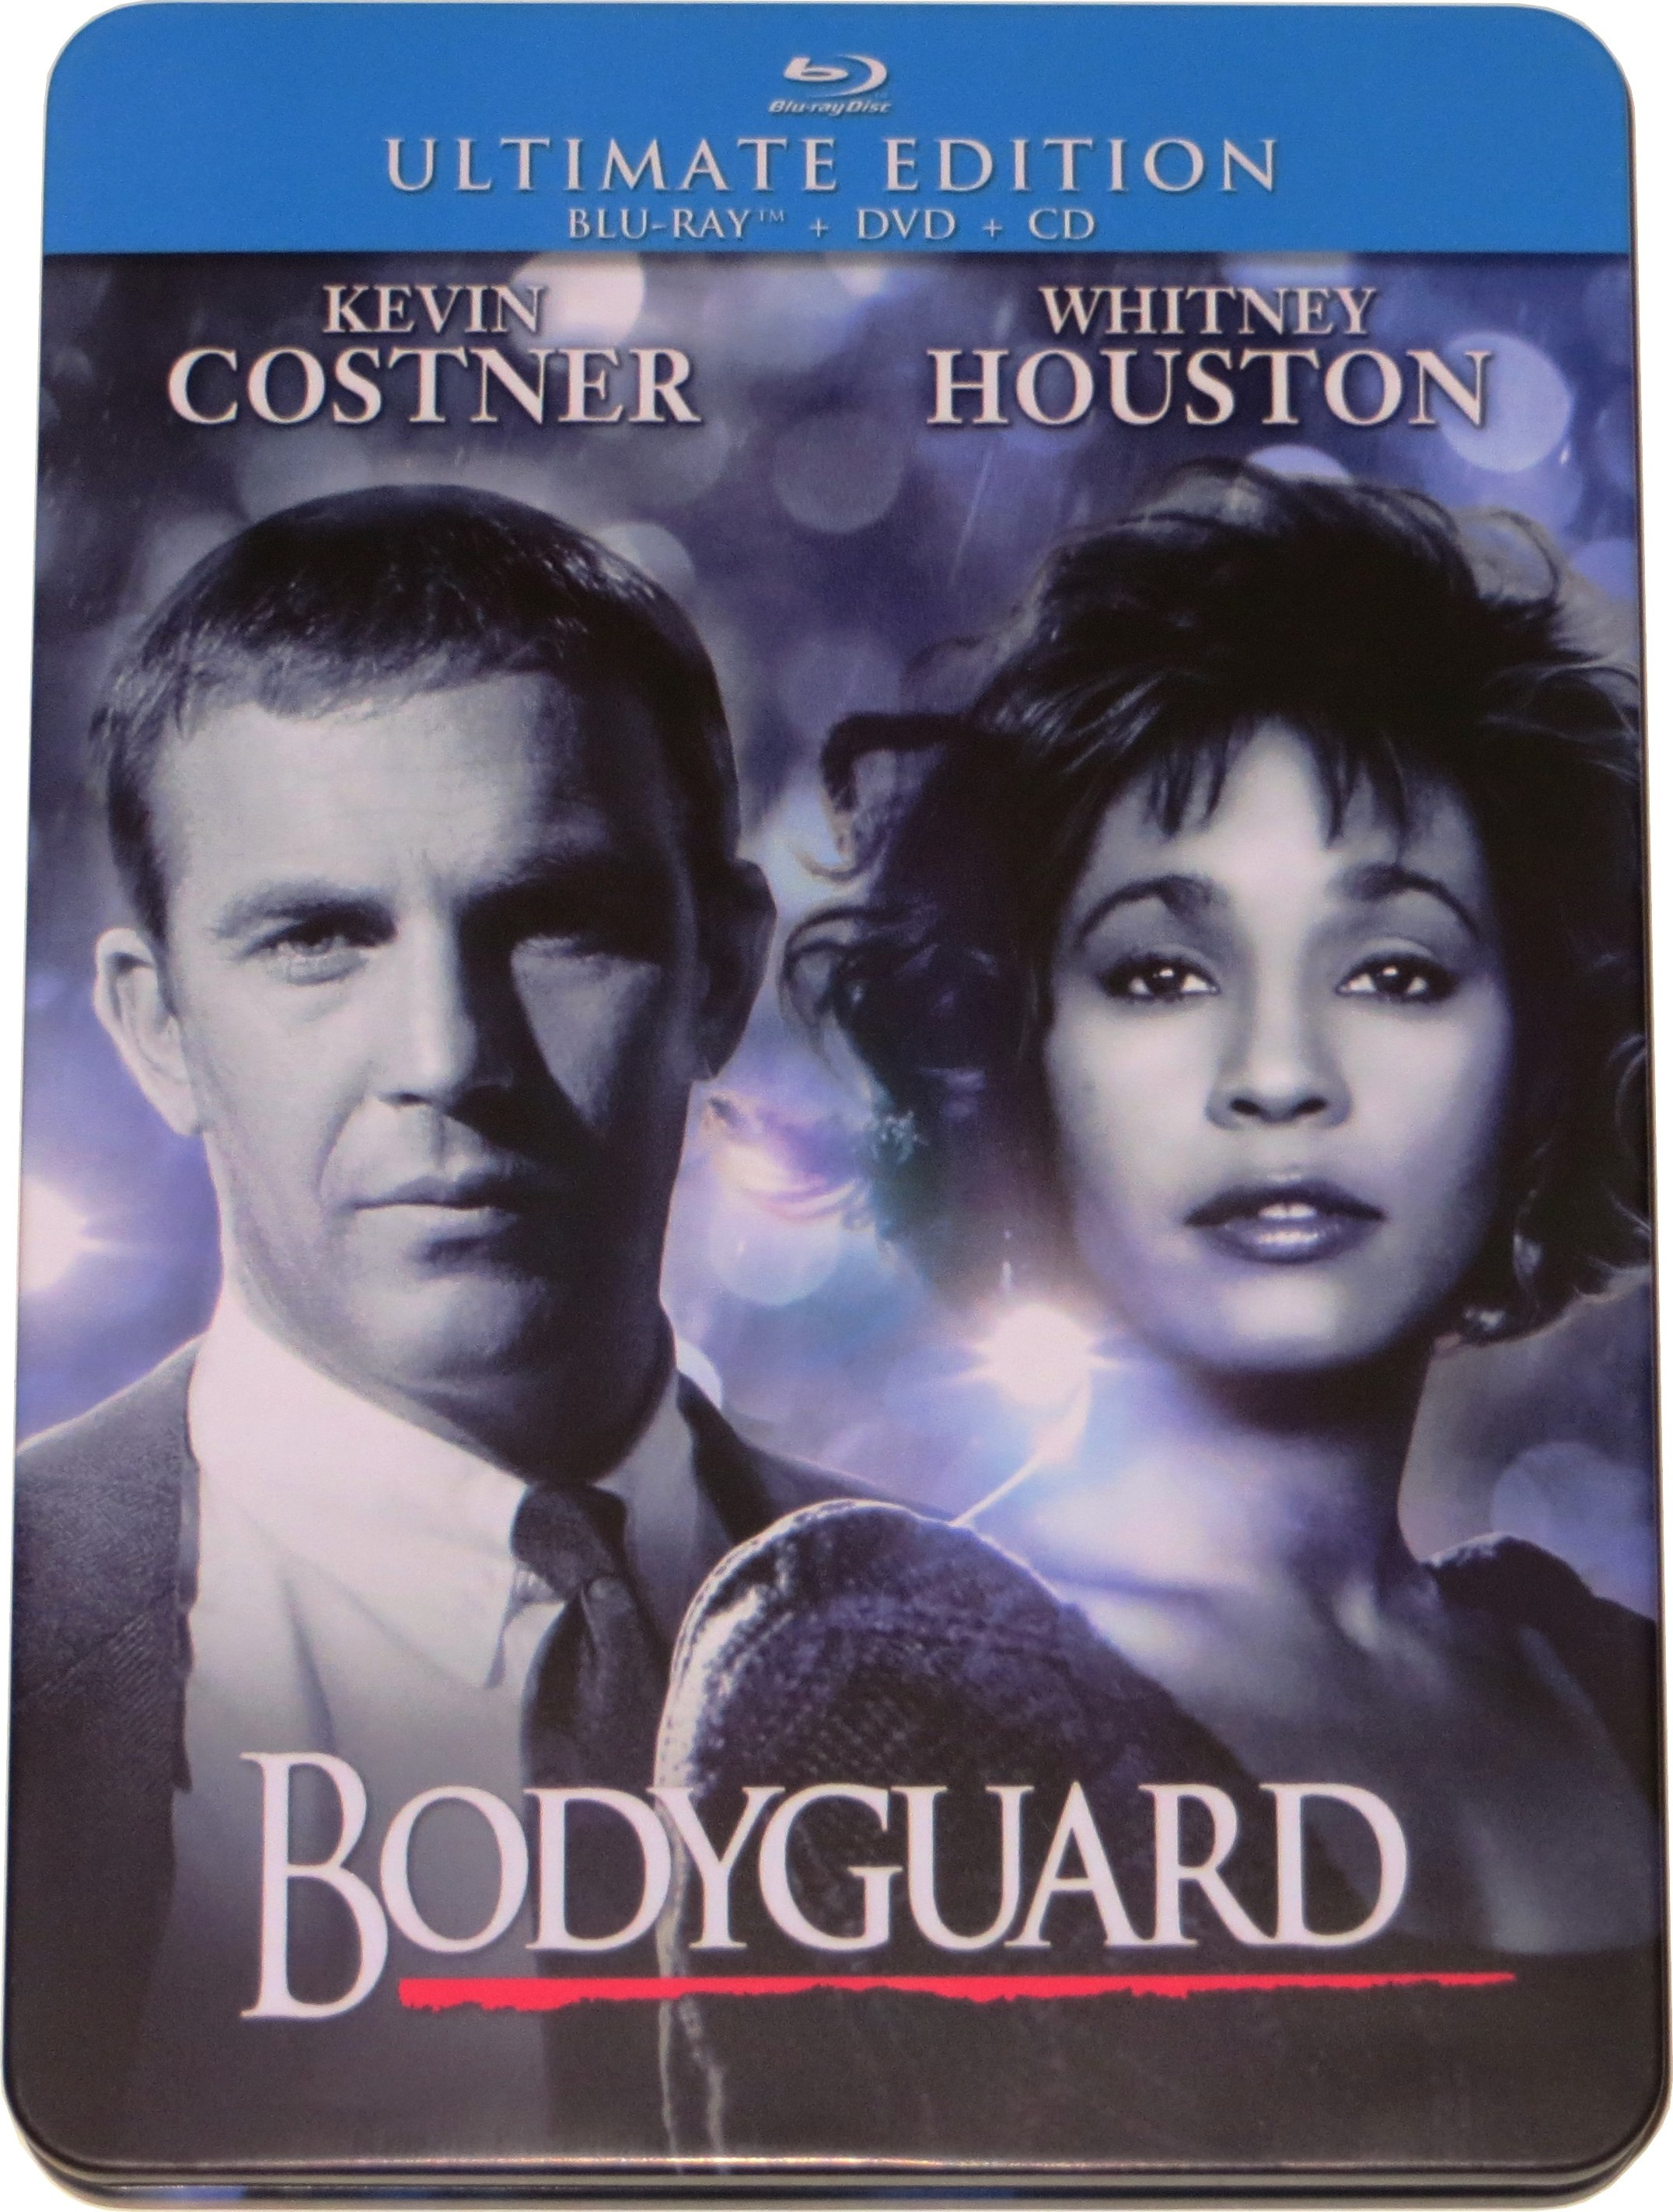 The Bodyguard Wallpapers Movie Hq The Bodyguard Pictures 4k Wallpapers 2019